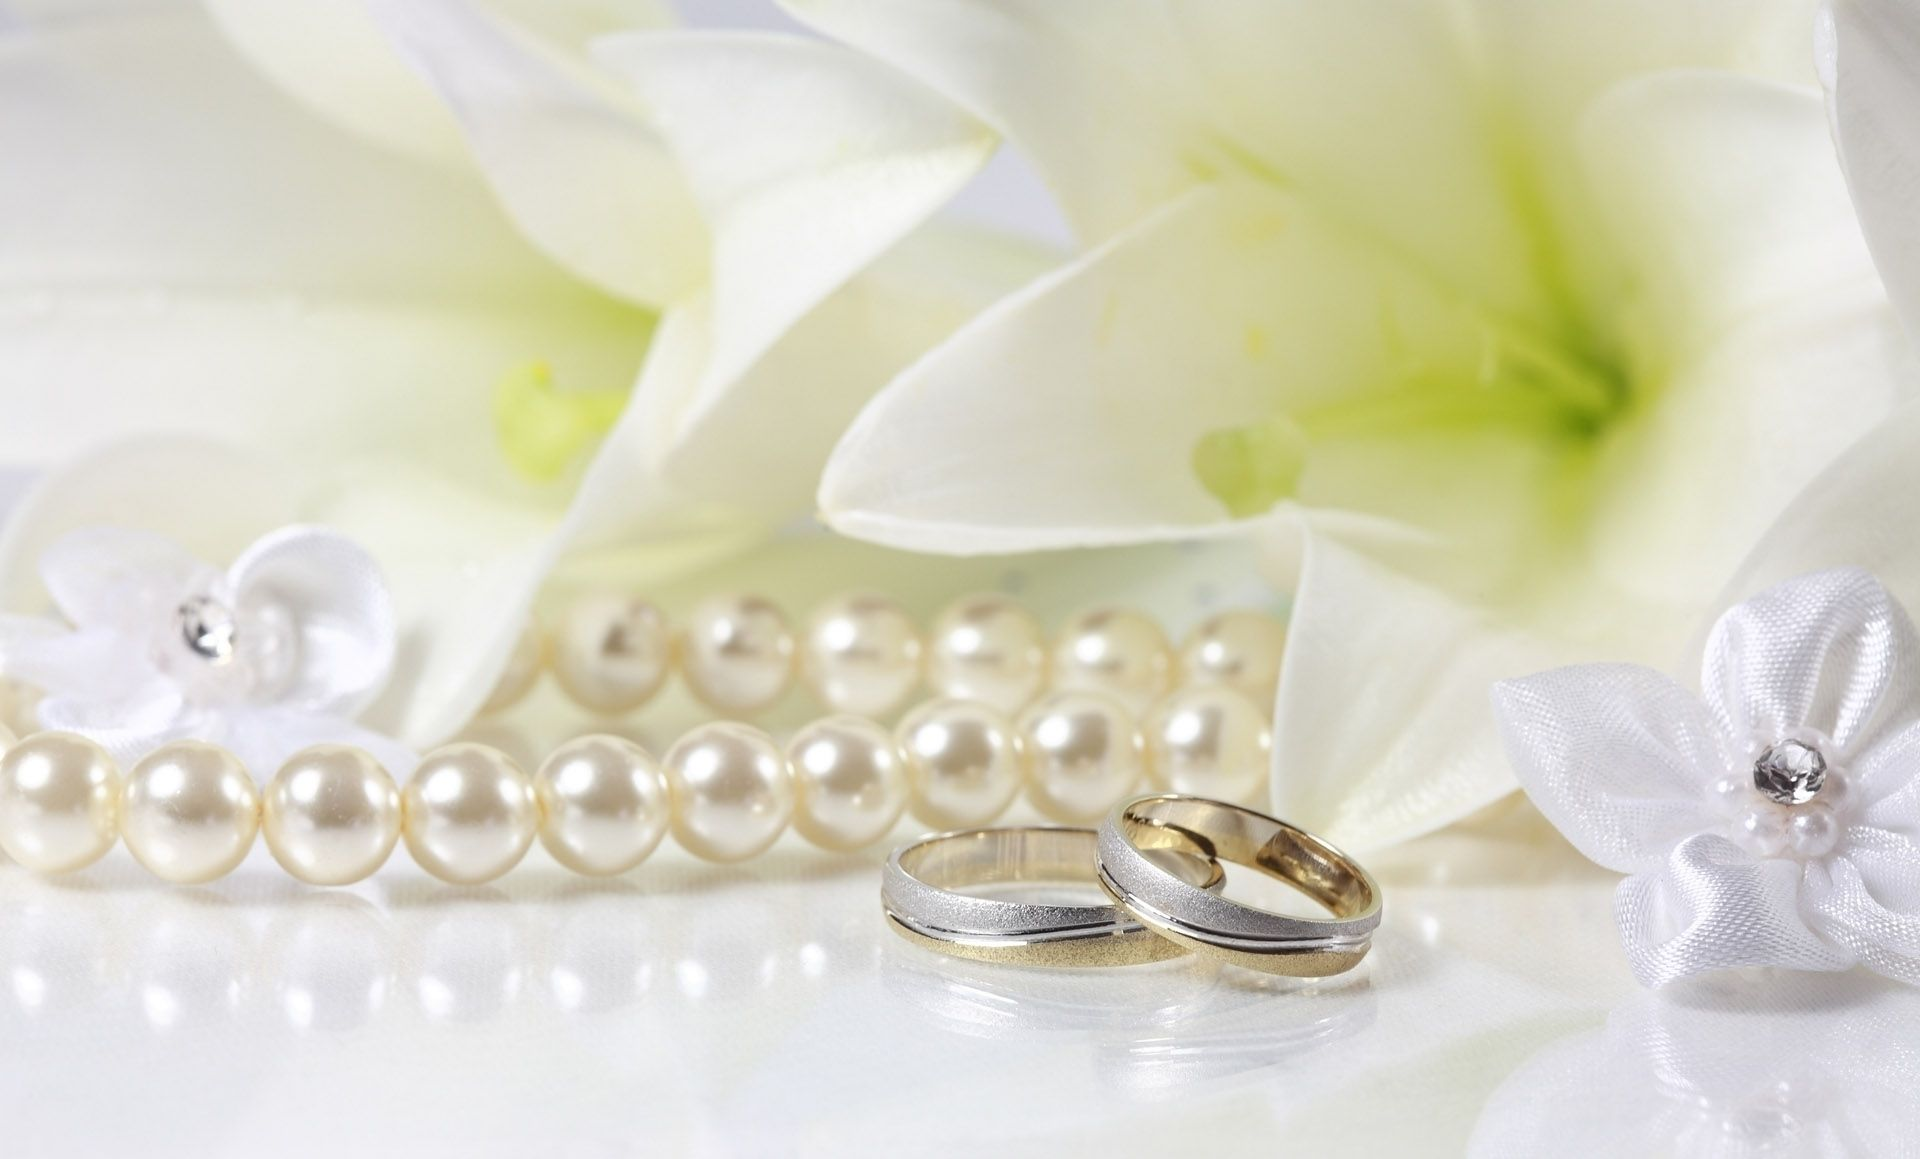 Pearls are a traditional wedding accessory wedding trends